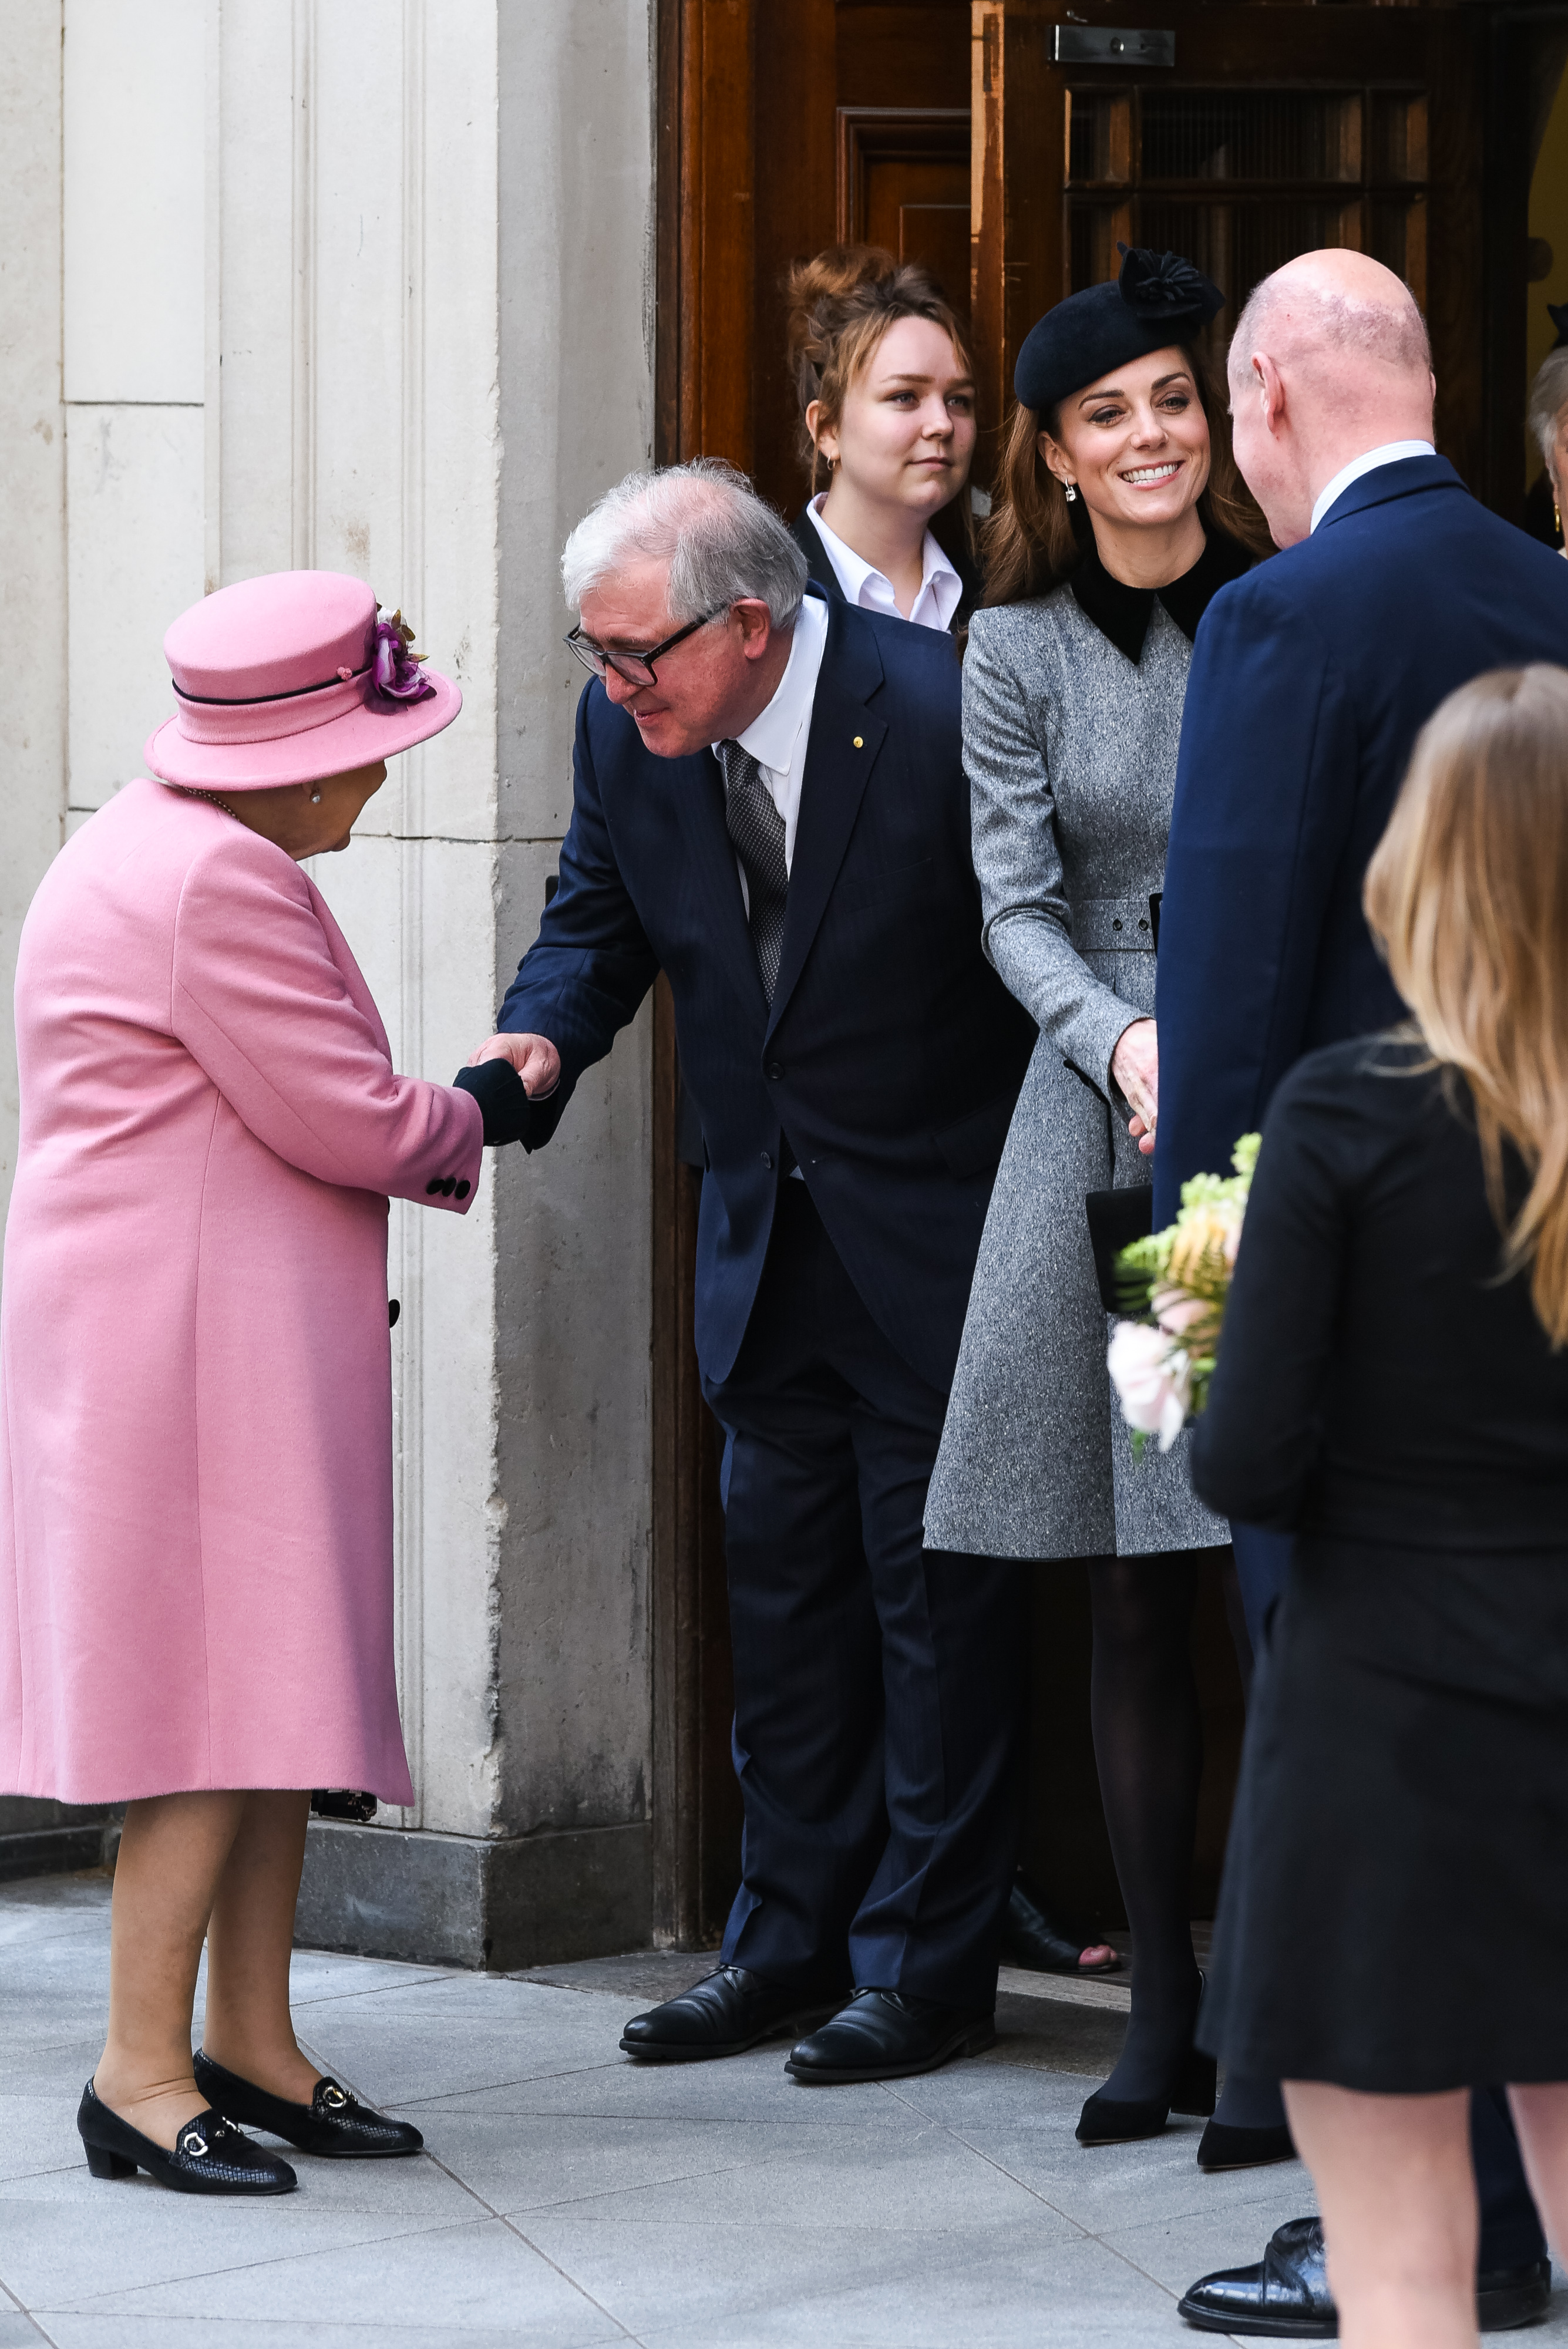 Queen Elizabeth II accompanied by and Catherine, Duchess of Cambridge Visit King's College London